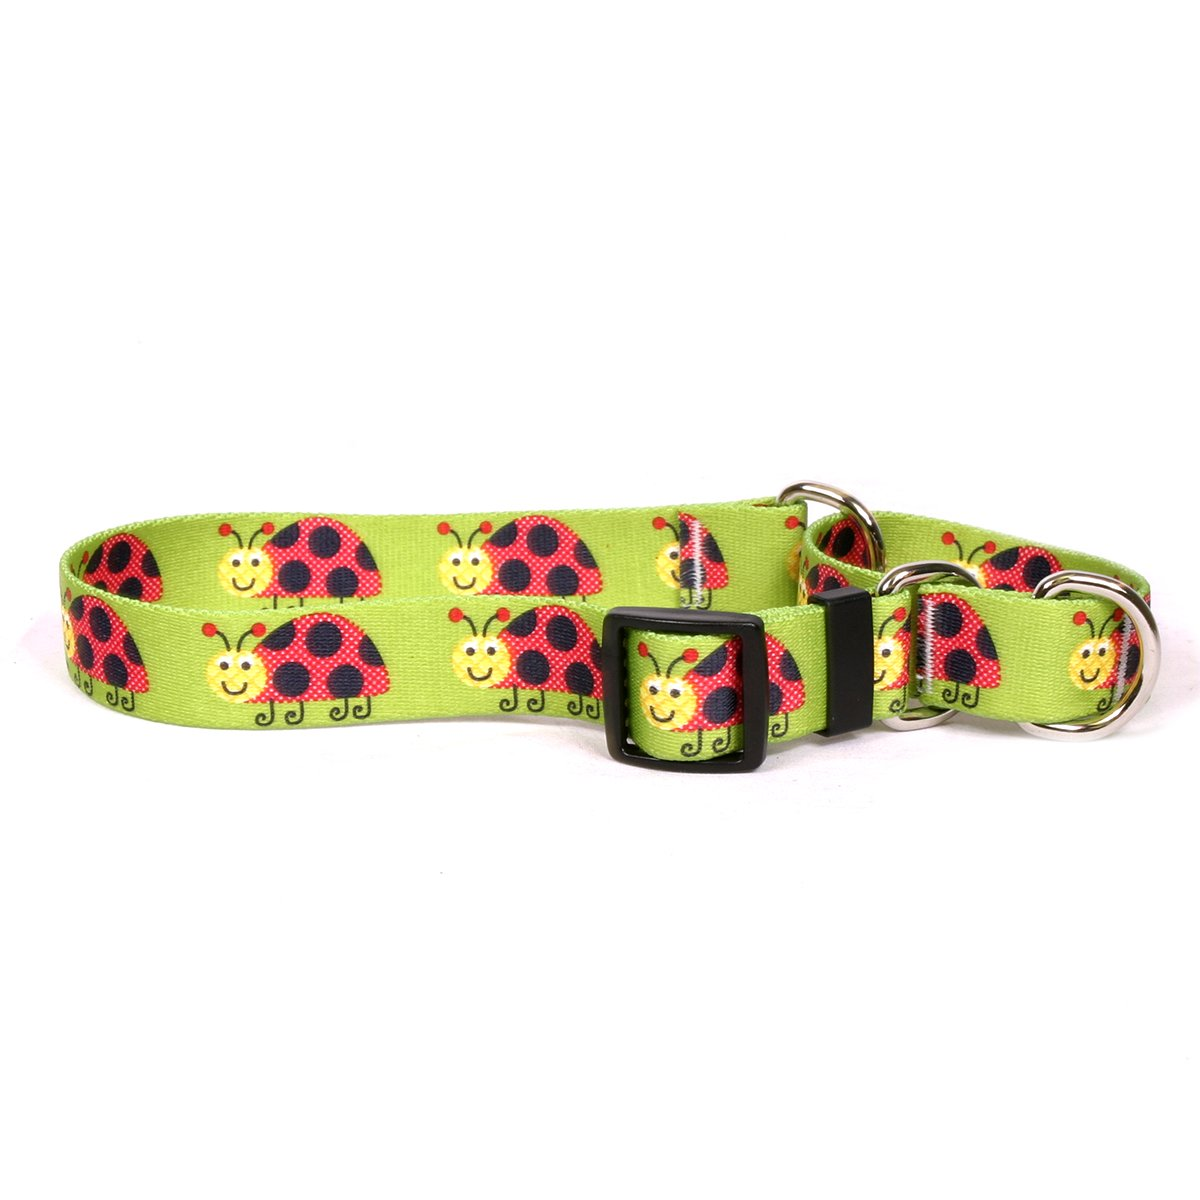 Yellow Dog Design Lovely Ladybugs Martingale Dog Collar 3/4'' Wide And Fits Neck 12 To 16'', Small